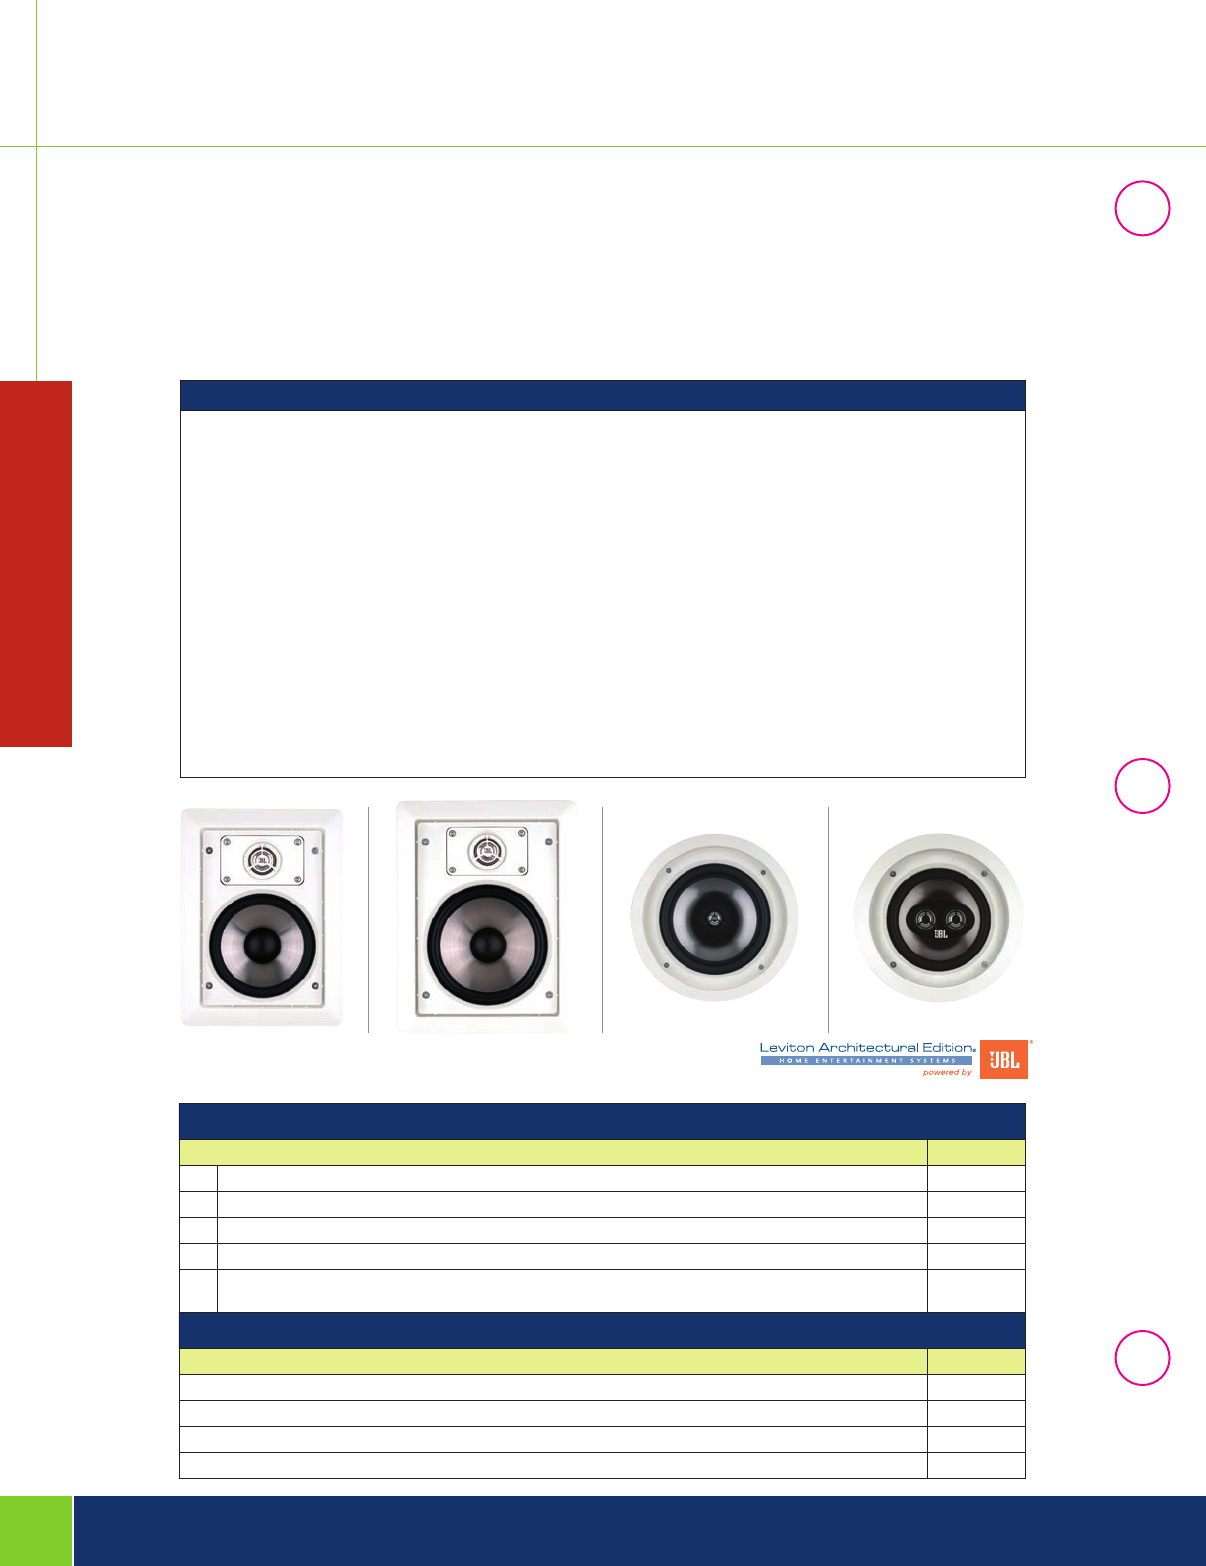 142907 Catalog Image Of Home Command Center Structured Wiring Panel With 1x8 Coax And Entertainment In Wall Ceiling Speakers